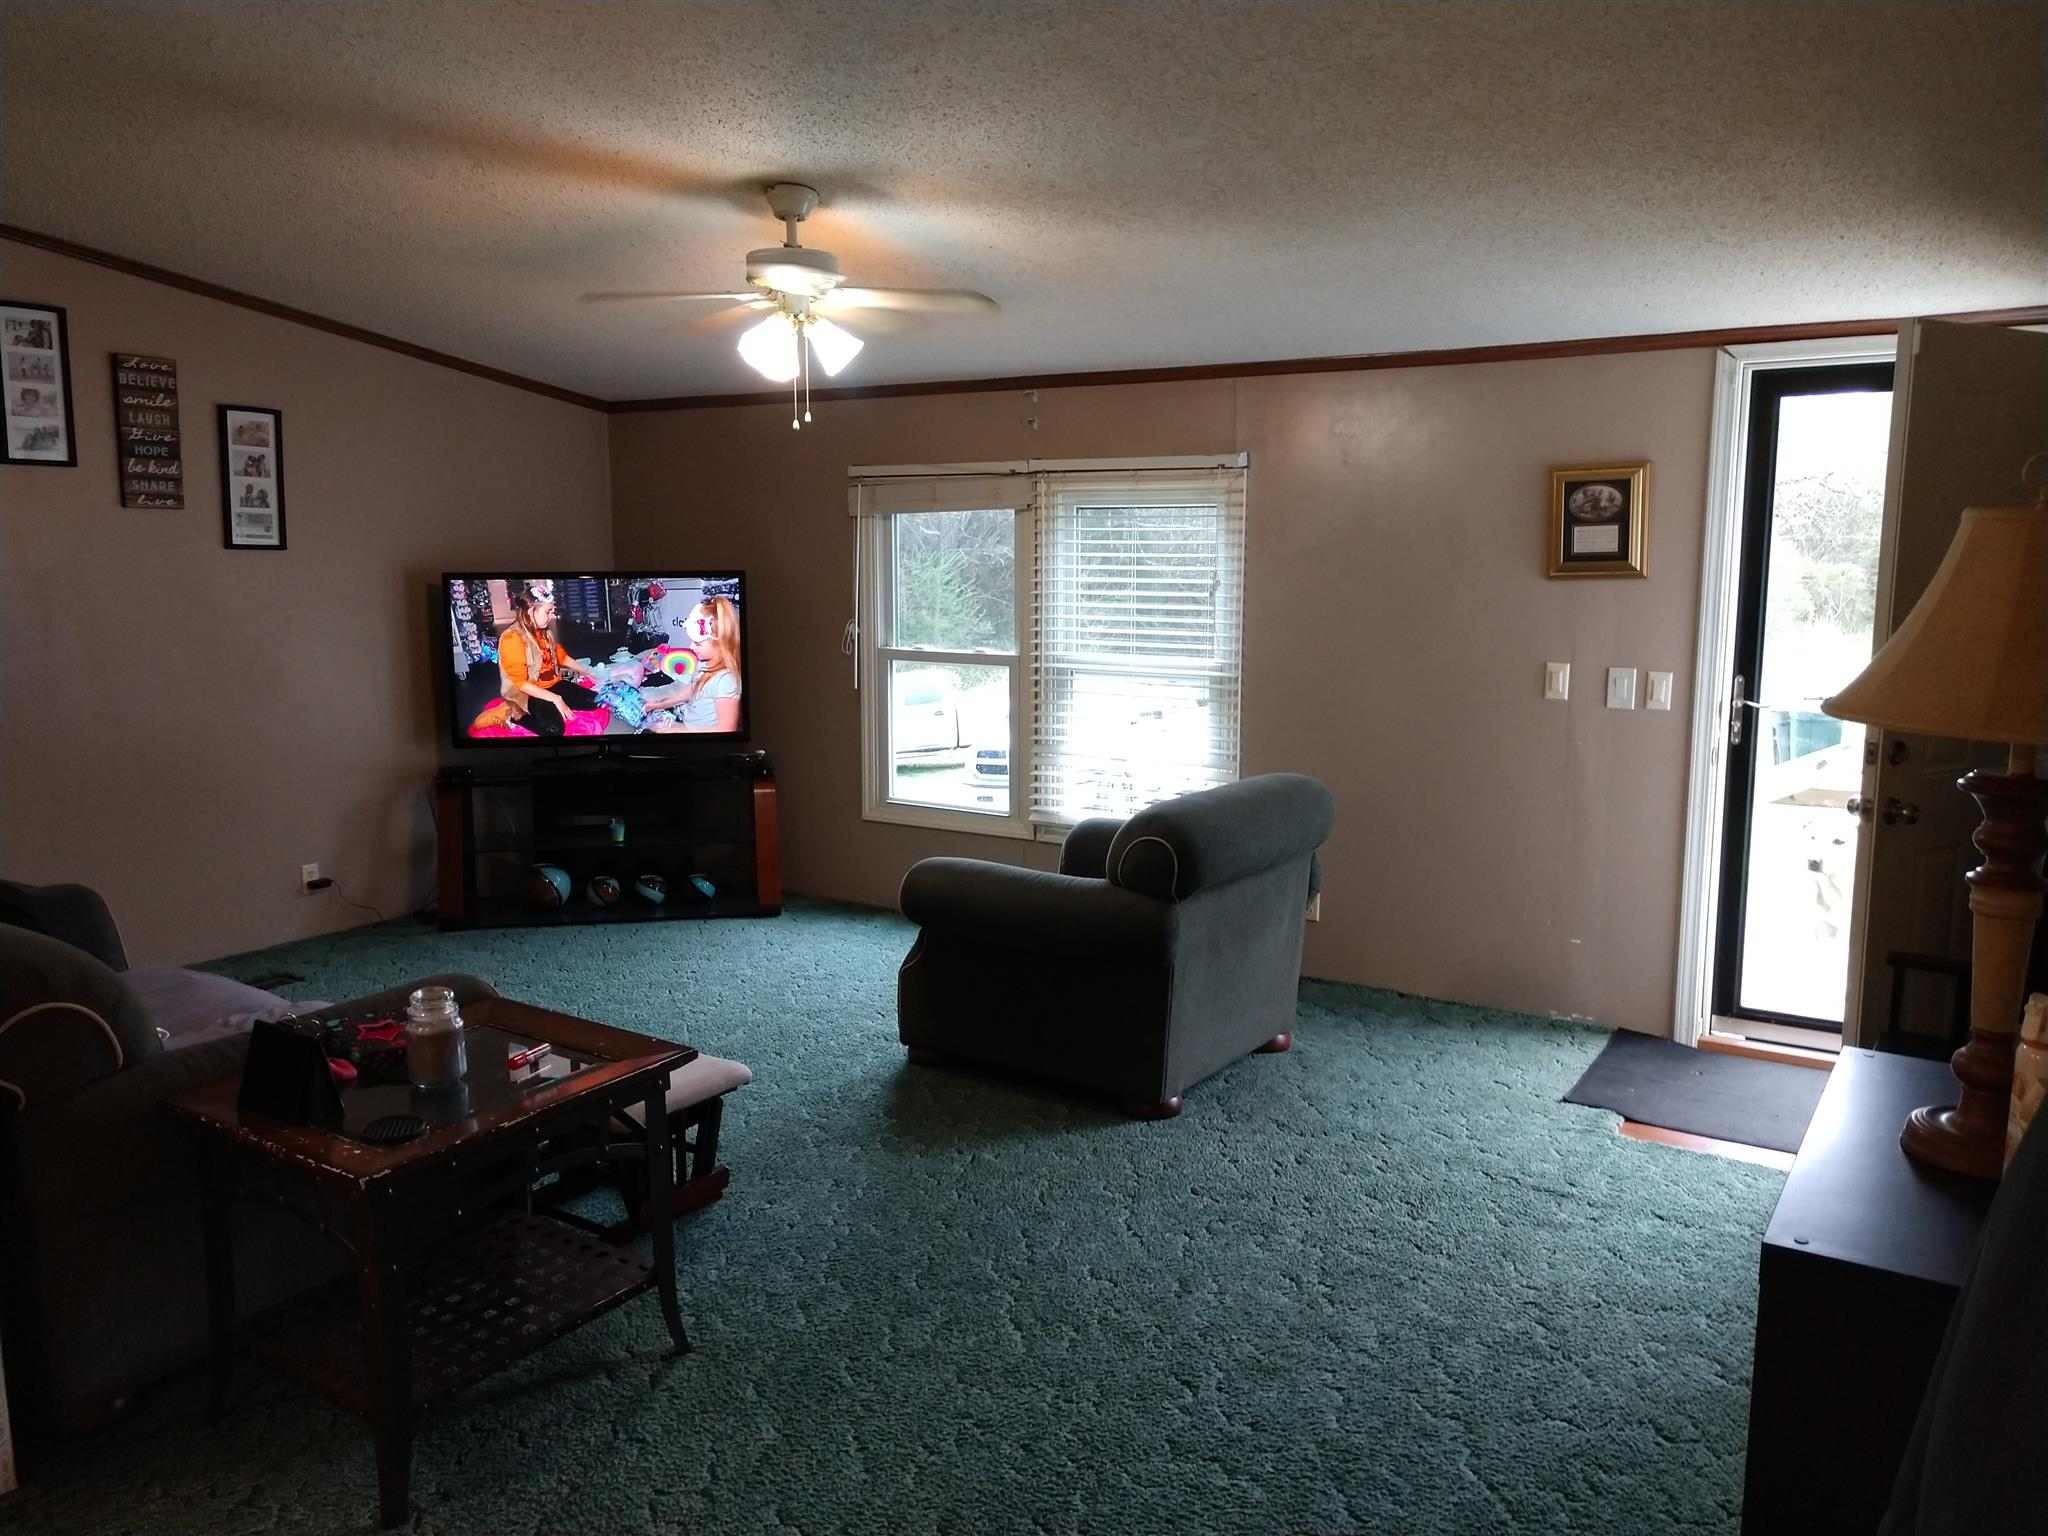 197 Switchboard Rd - photo 8